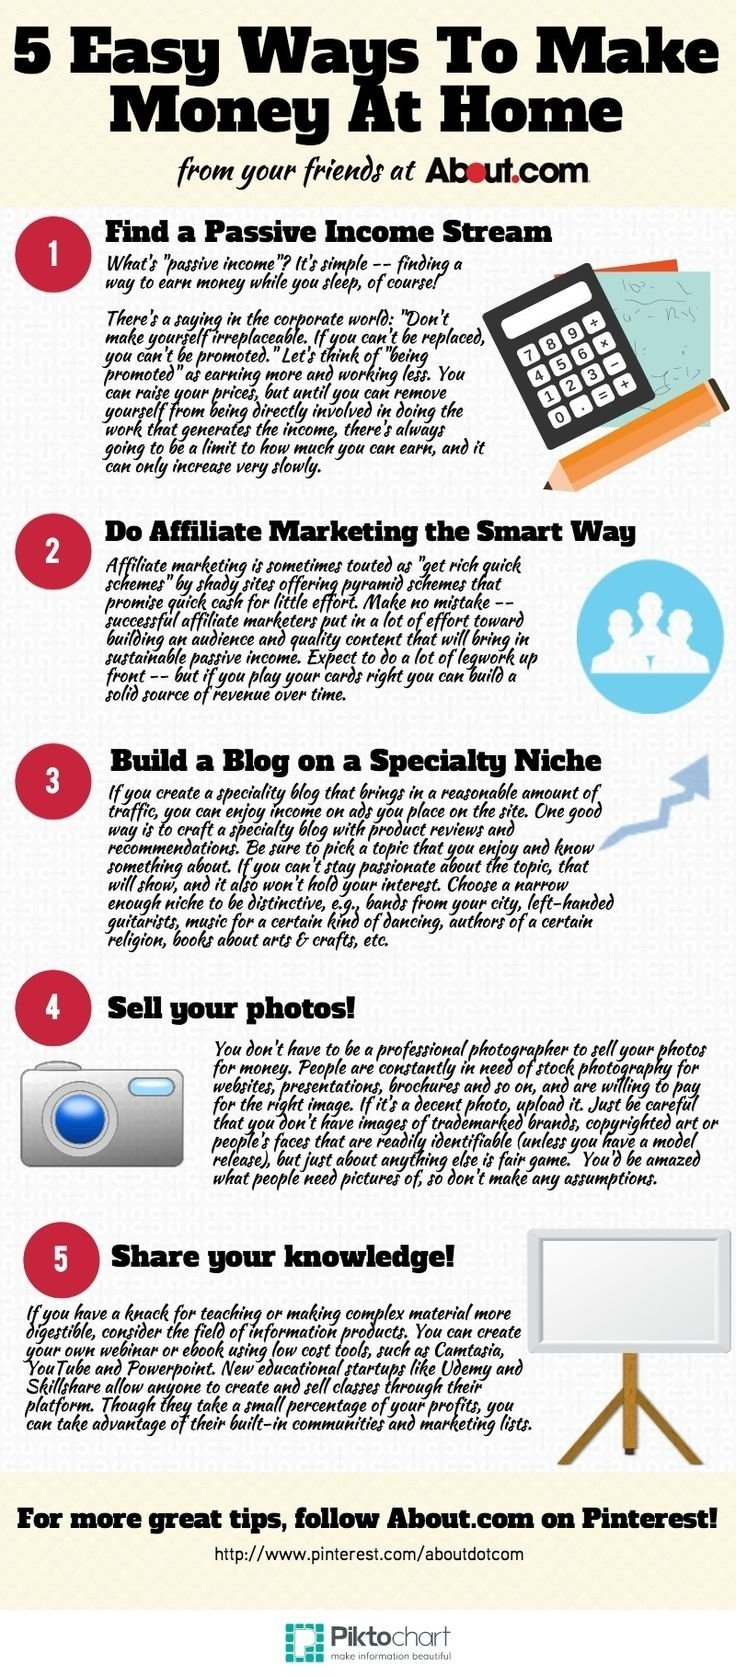 10 Fantastic Ideas To Earn Extra Money 20 best real easy ways to make money on internet images on pinterest